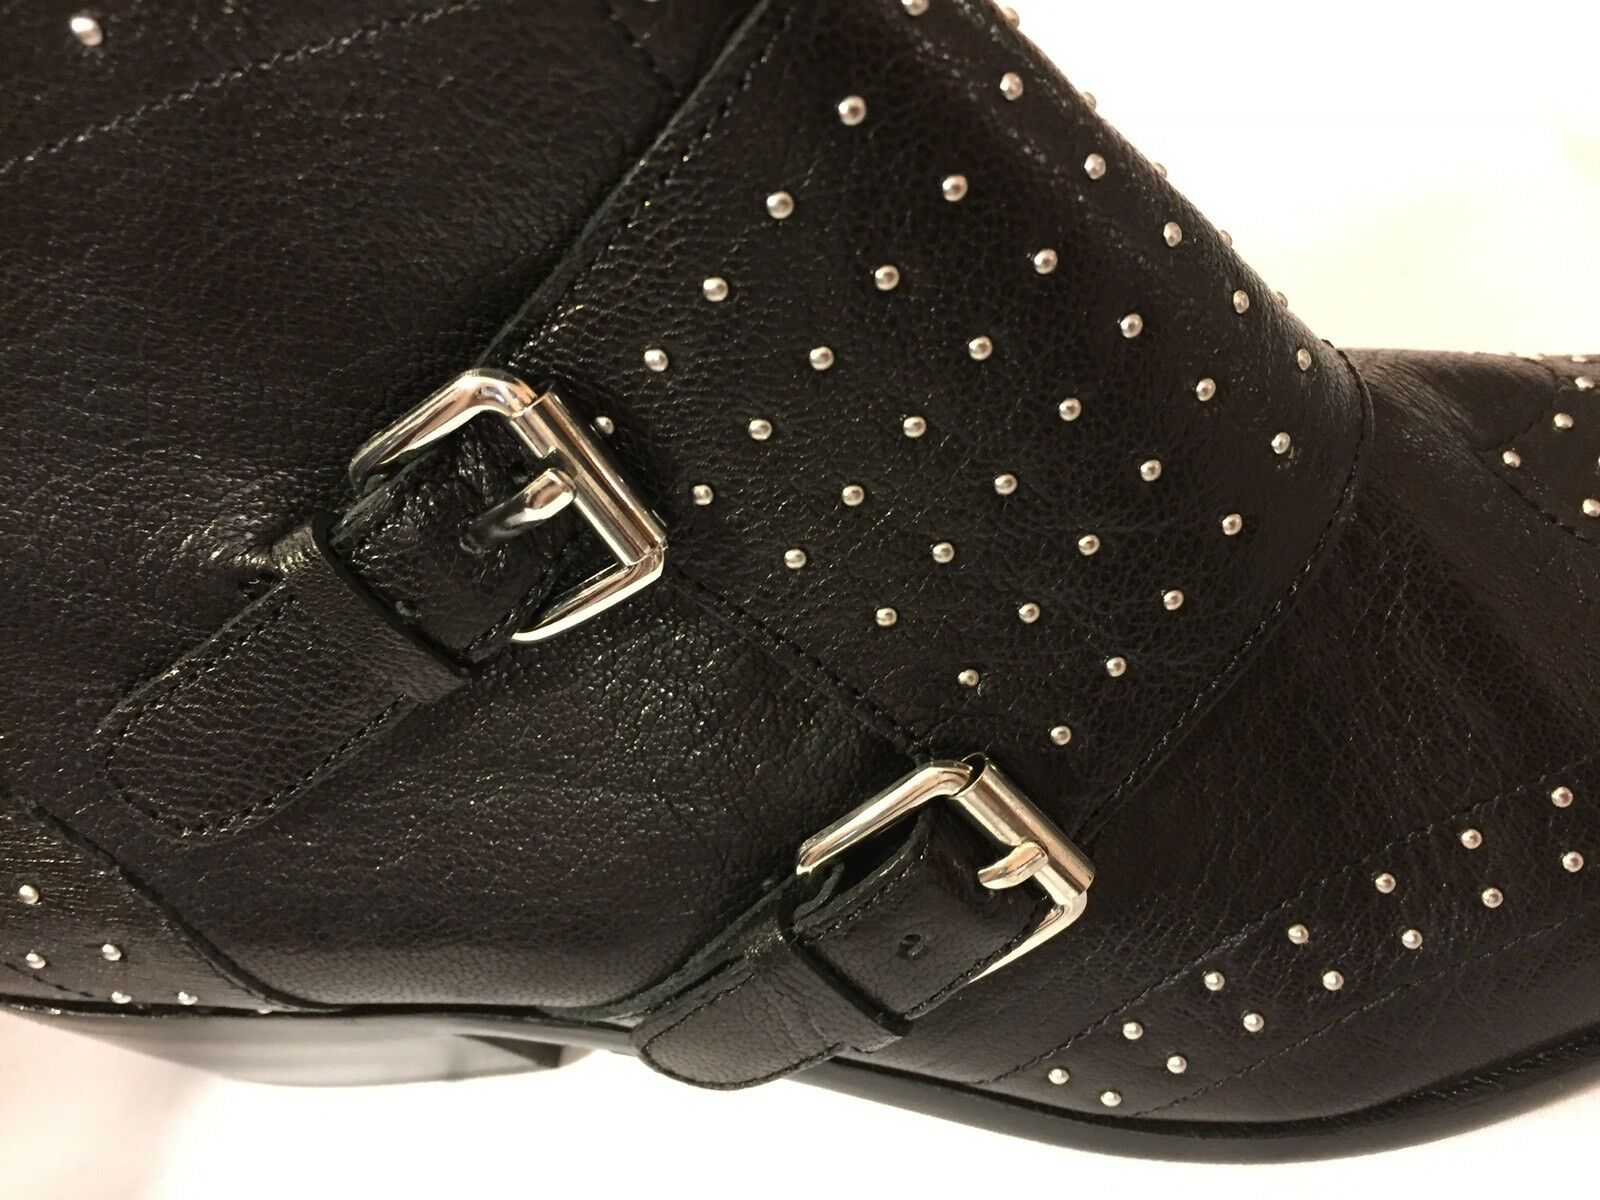 Rebecca Mink-off Studded Studded Studded New Taille 7.5   7 bottes ab19e4